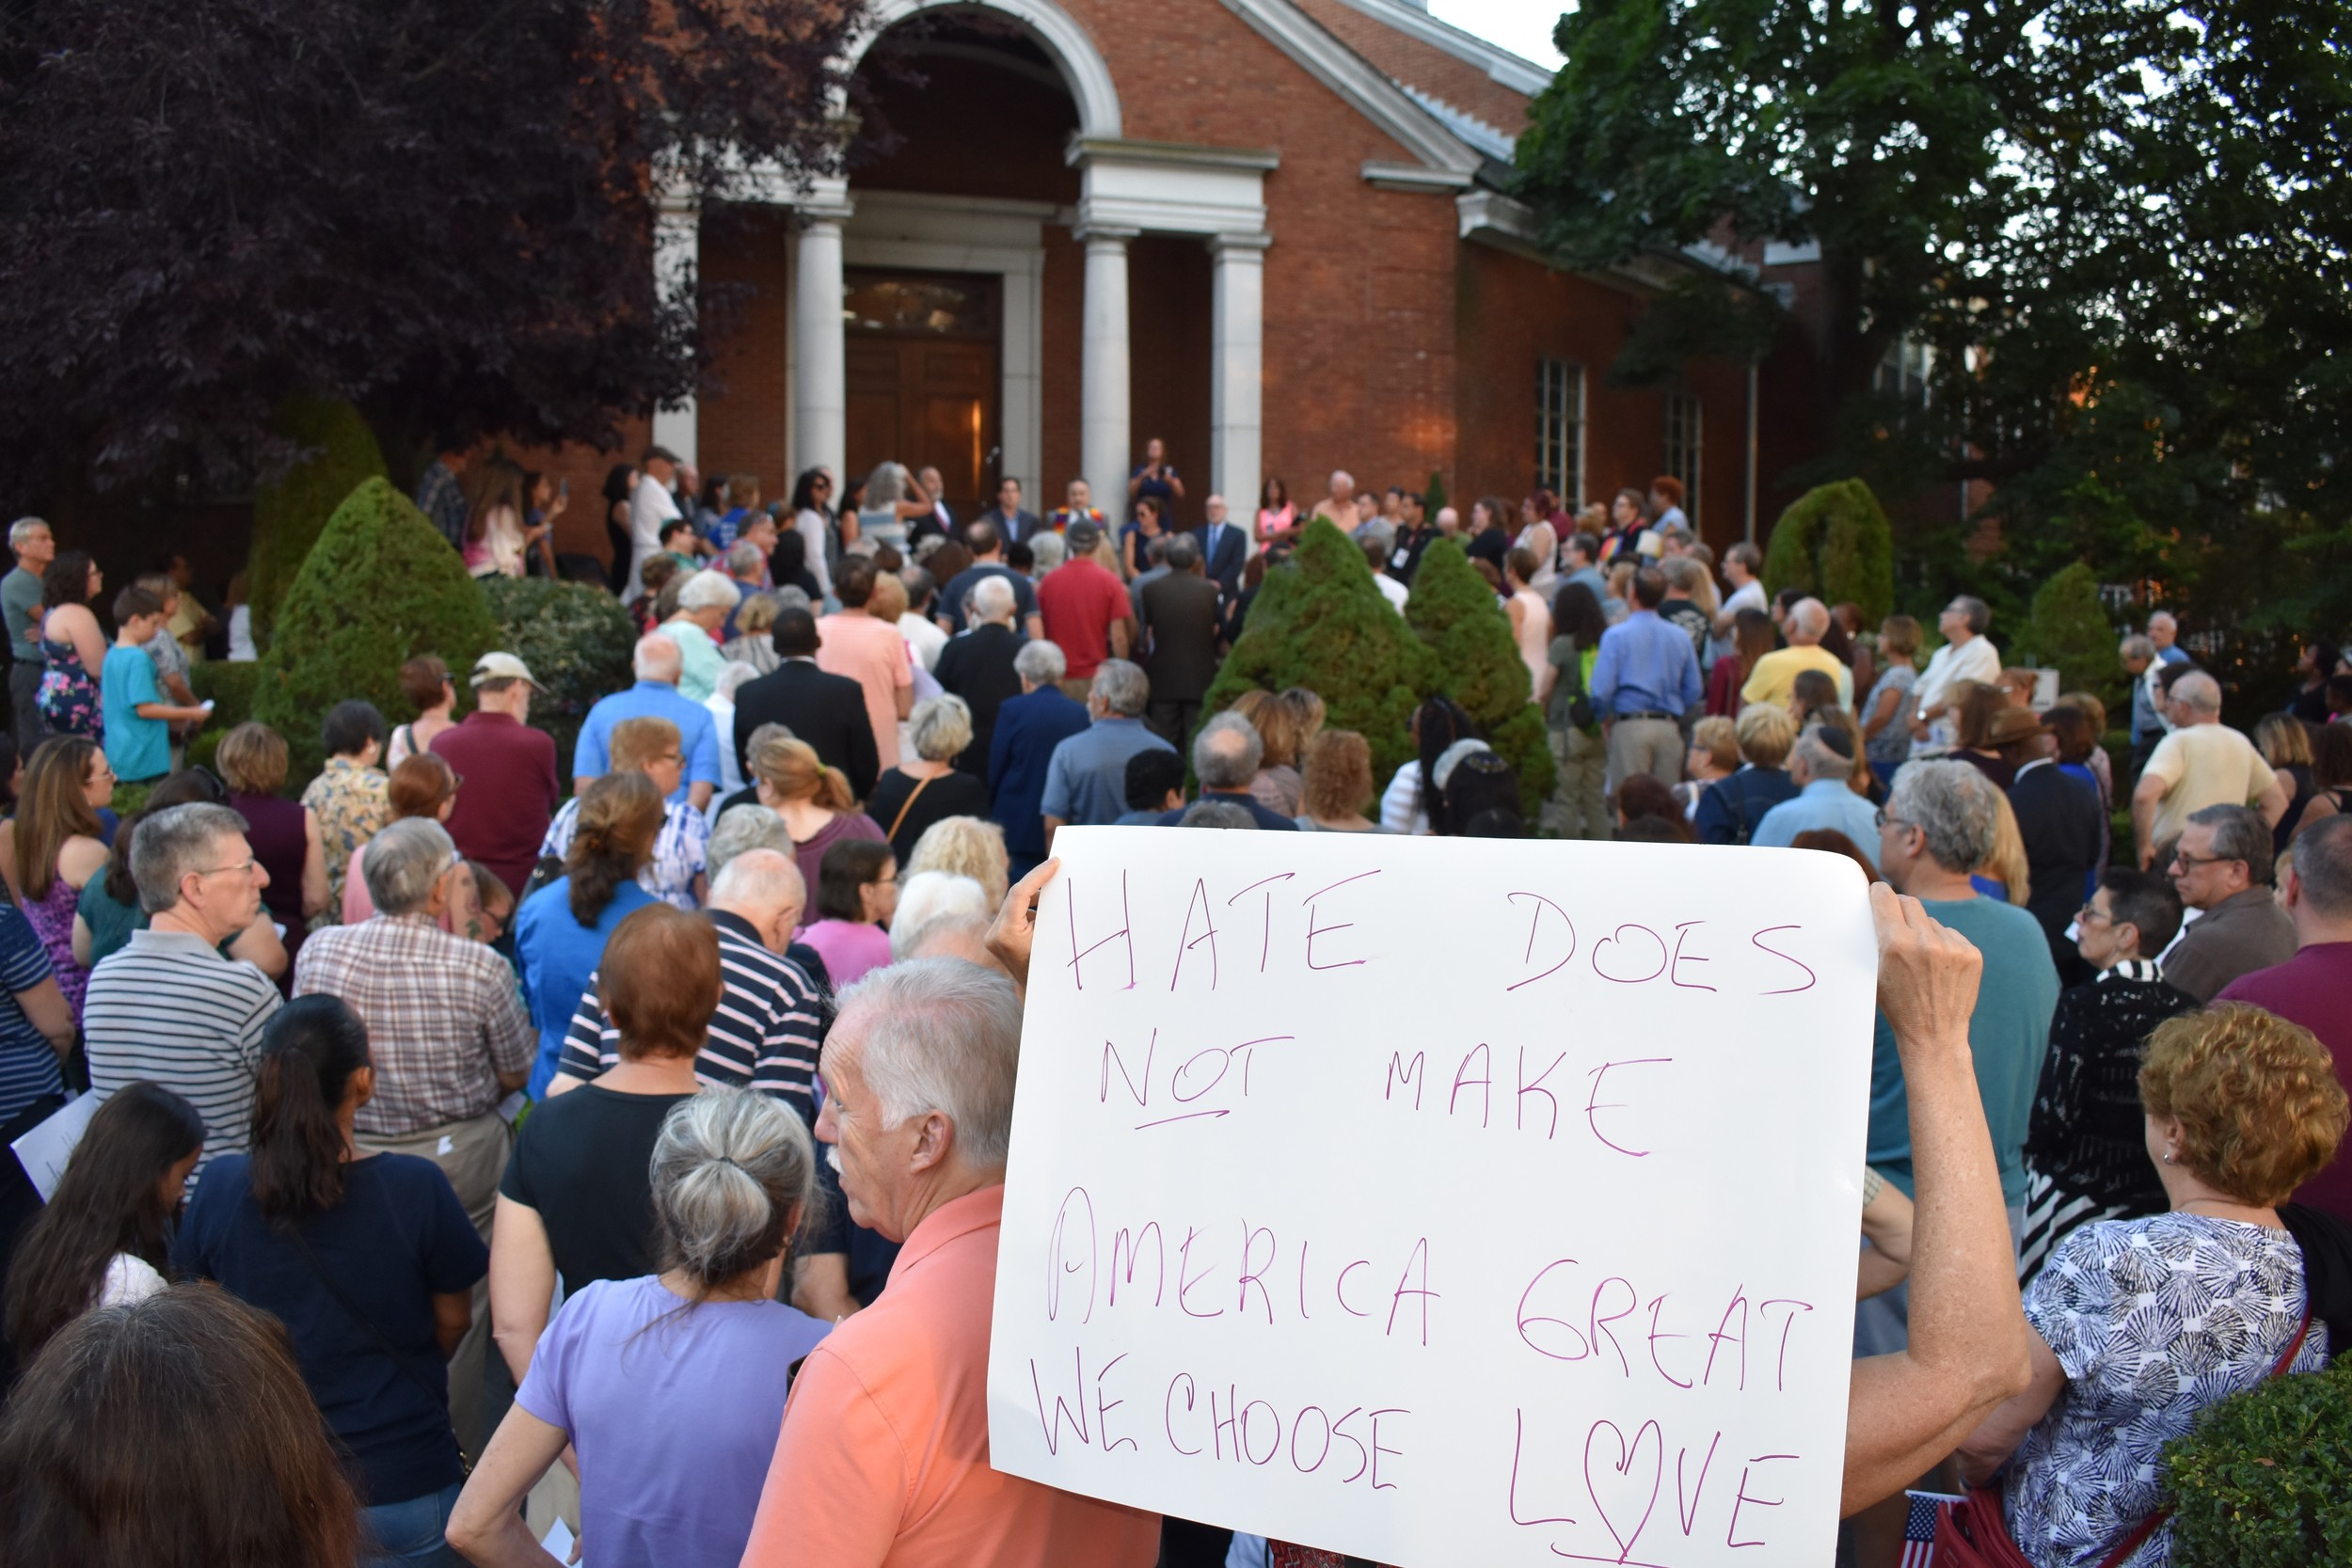 People gathered at the steps of Central Synagogue-Beth Emeth to denounce hatred and racism at a vigil on Aug. 17, in response to the violence in Charlottesville, Va., a few days earlier.